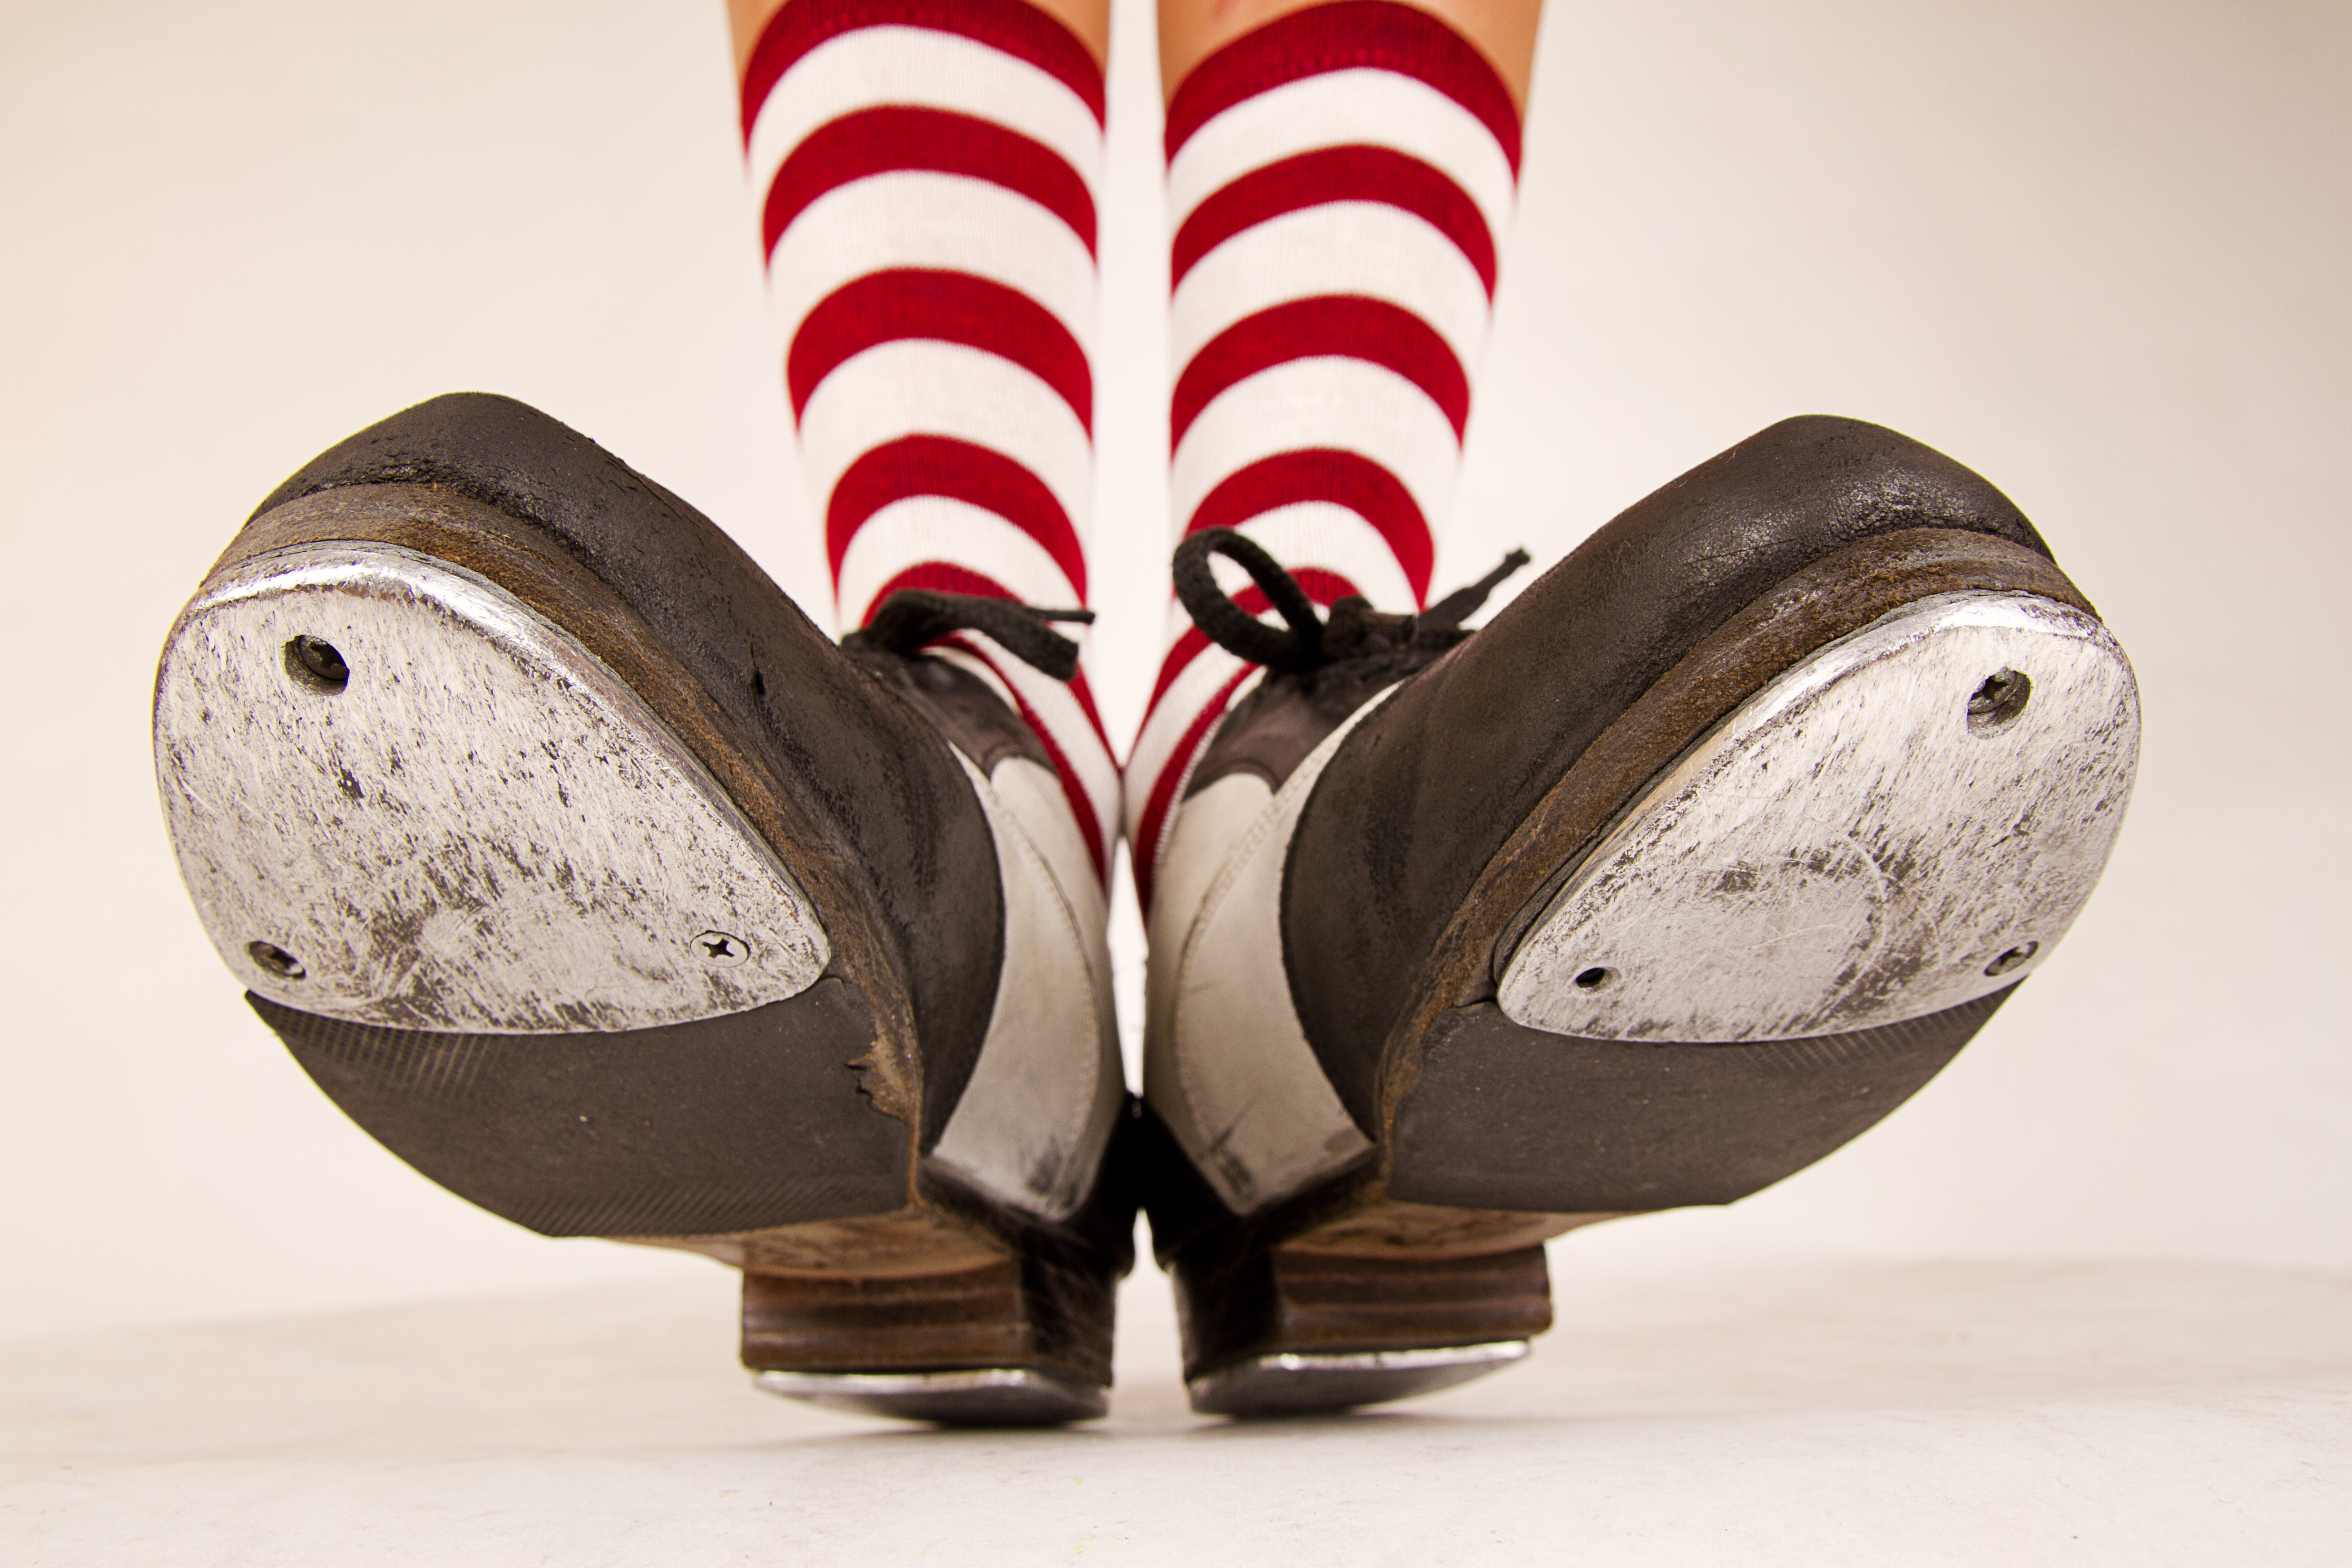 Tap Dance (6-8 years) – Alberta Dance Alliance